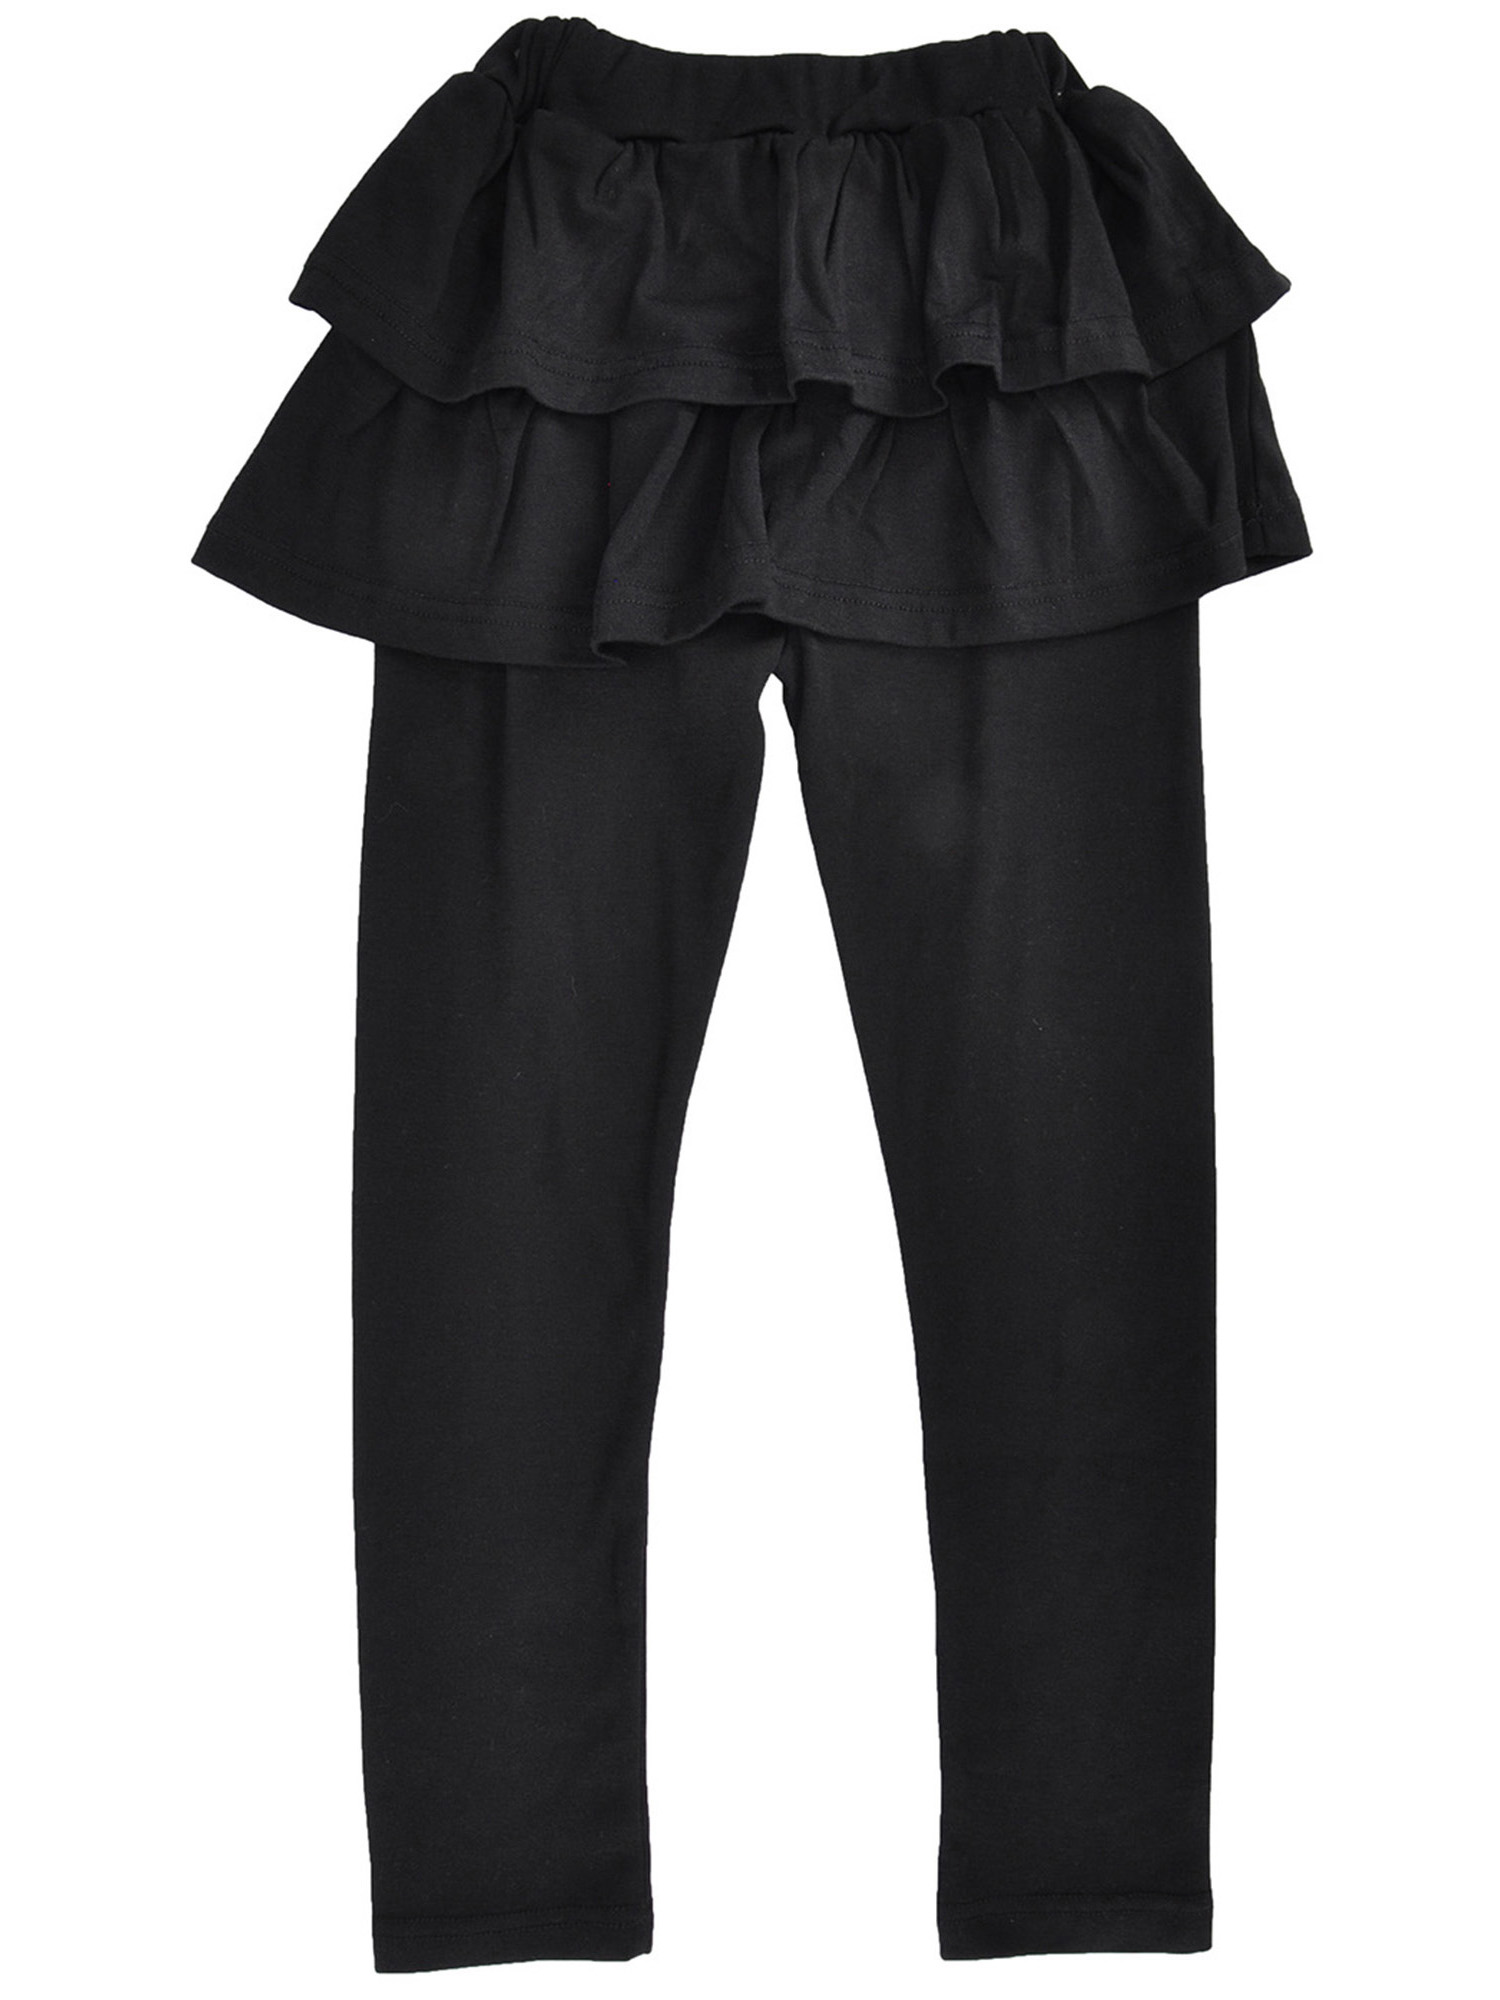 Simplicity Baby Girl Tutu Skirt with Attached Double Layered Leggings Pants